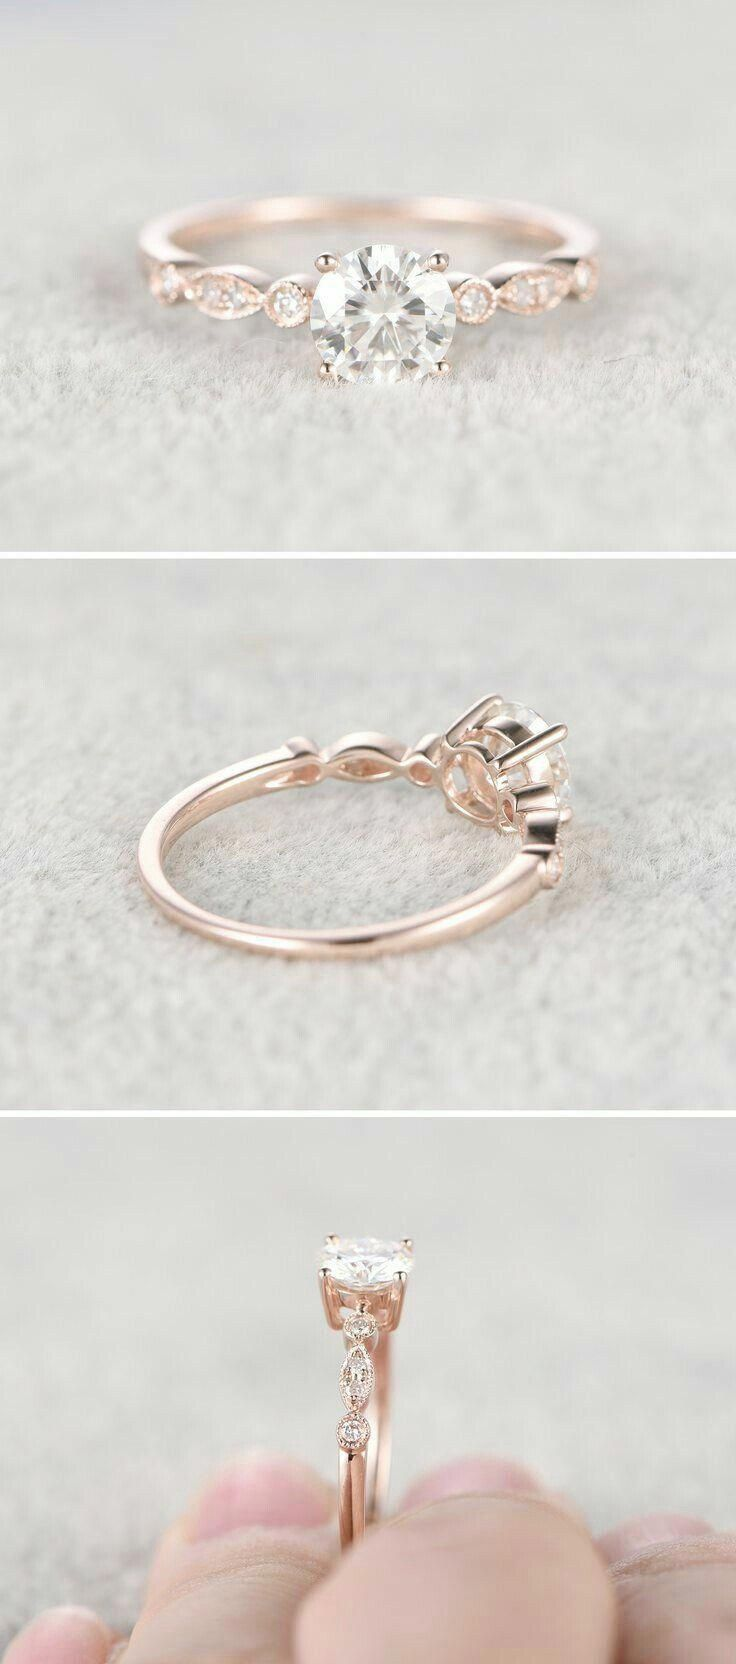 Braided Knot Sterling Silver Wedding Band Or Promise Ring Spins